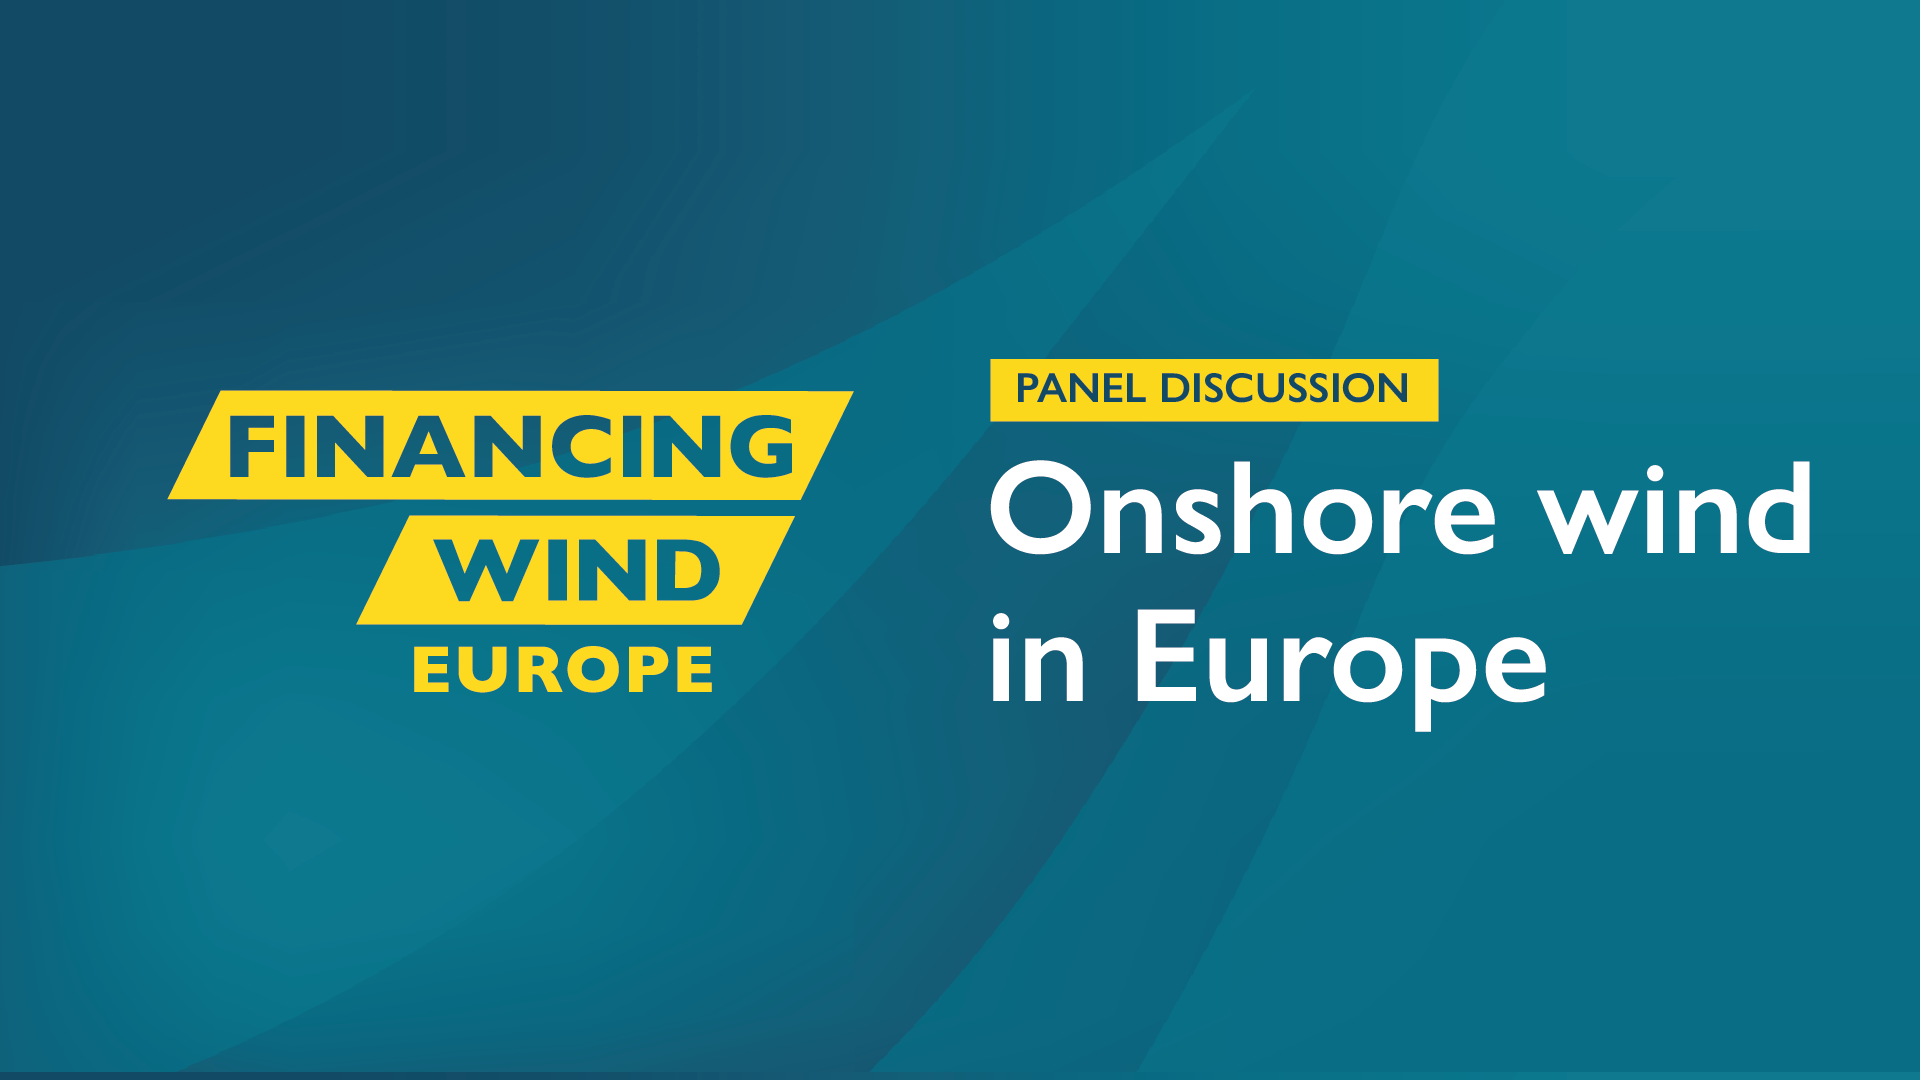 Panel Discussion: Onshore wind in Europe